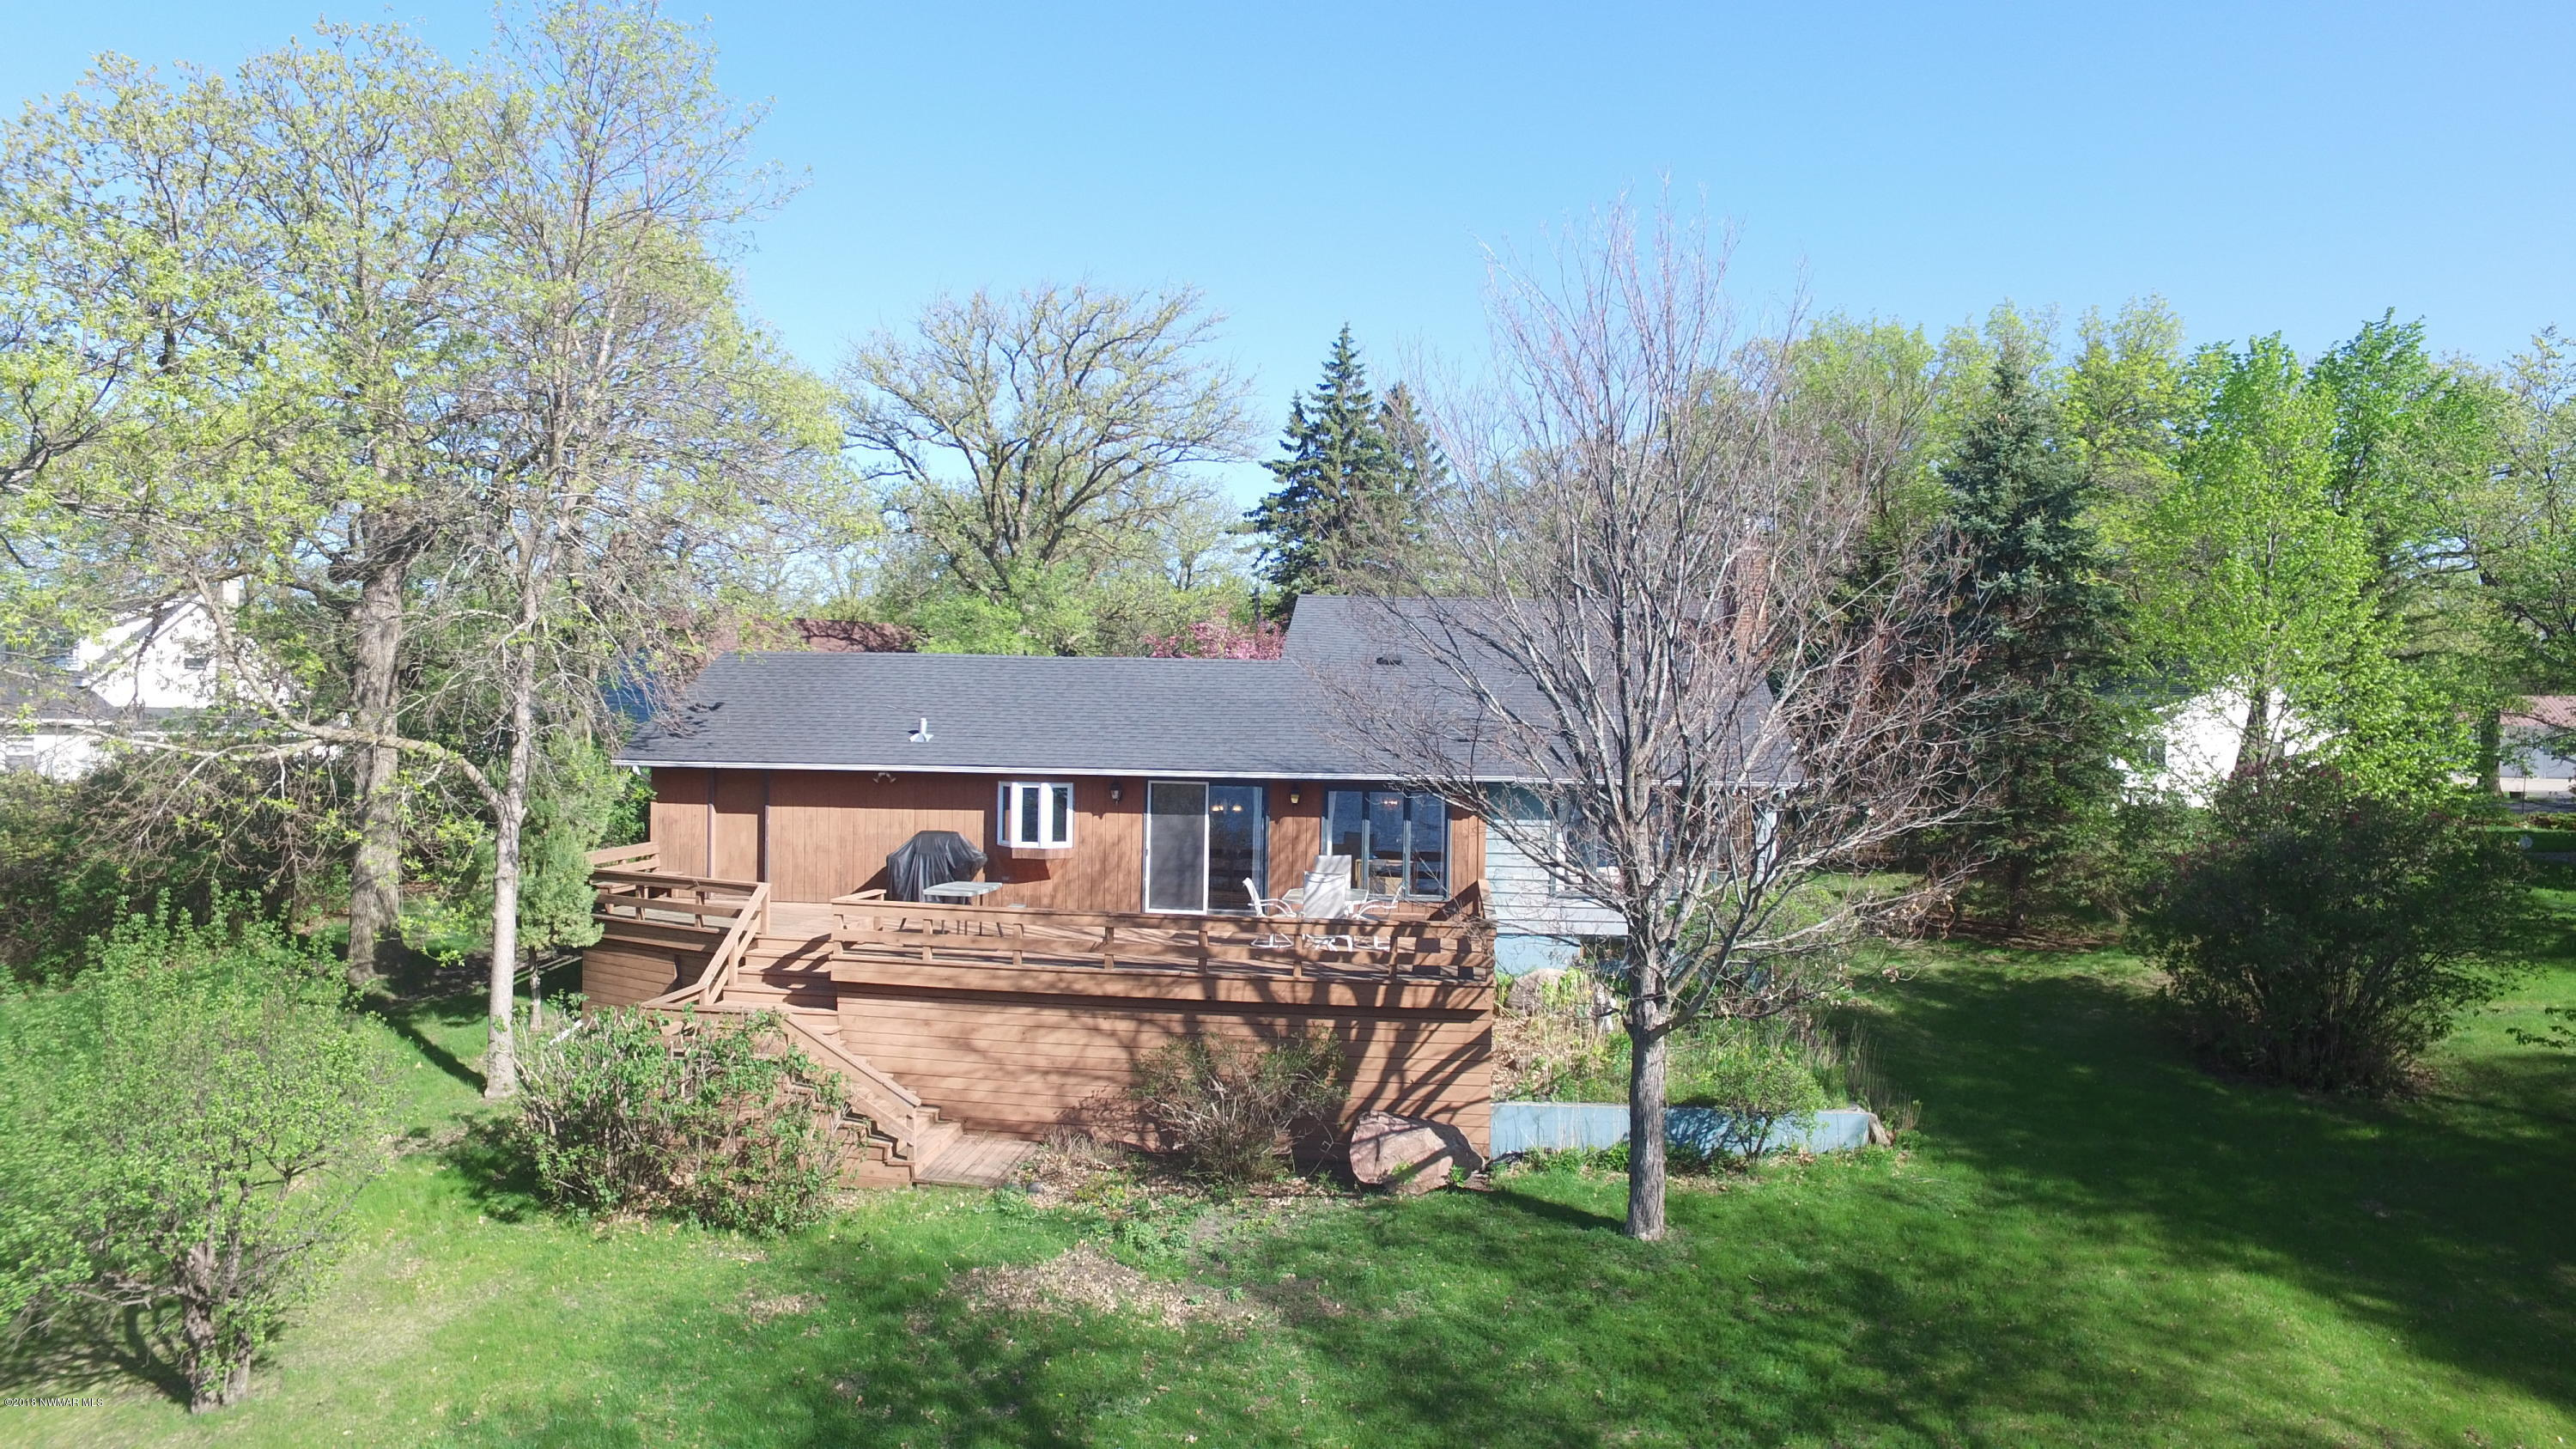 Home is located on the large portion of Maple Lake with stunning views and great fishing located just down the road from the Maple Lake pavilion.